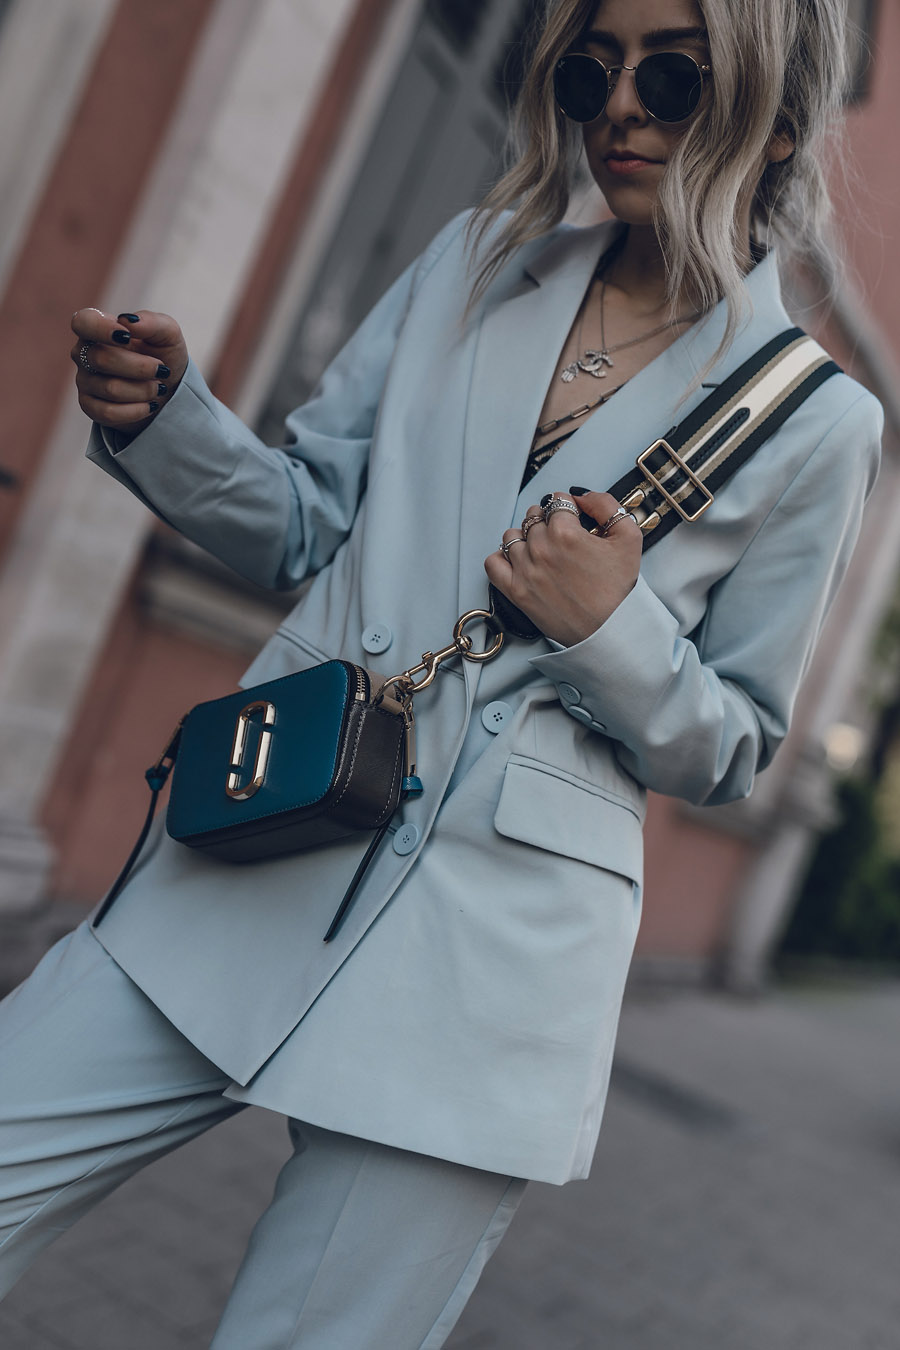 Pastel-Spring-Suit-Women-Outfit-Streetstyle-WantGetRepeat-Fashion-Blog-05